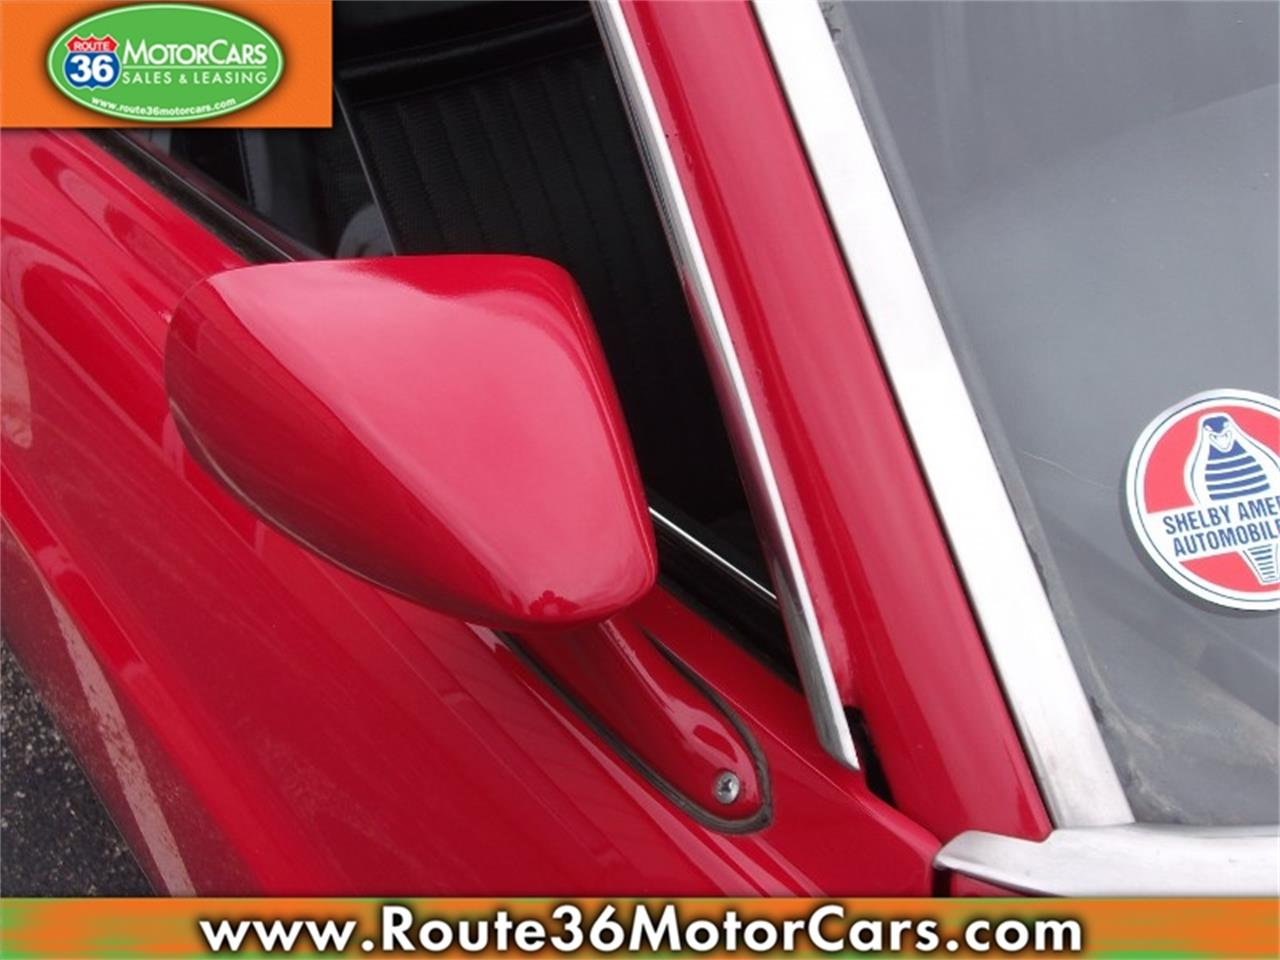 Large Picture of Classic 1970 Ford Mustang located in Dublin Ohio - $69,975.00 Offered by Route 36 Motor Cars - PBL3